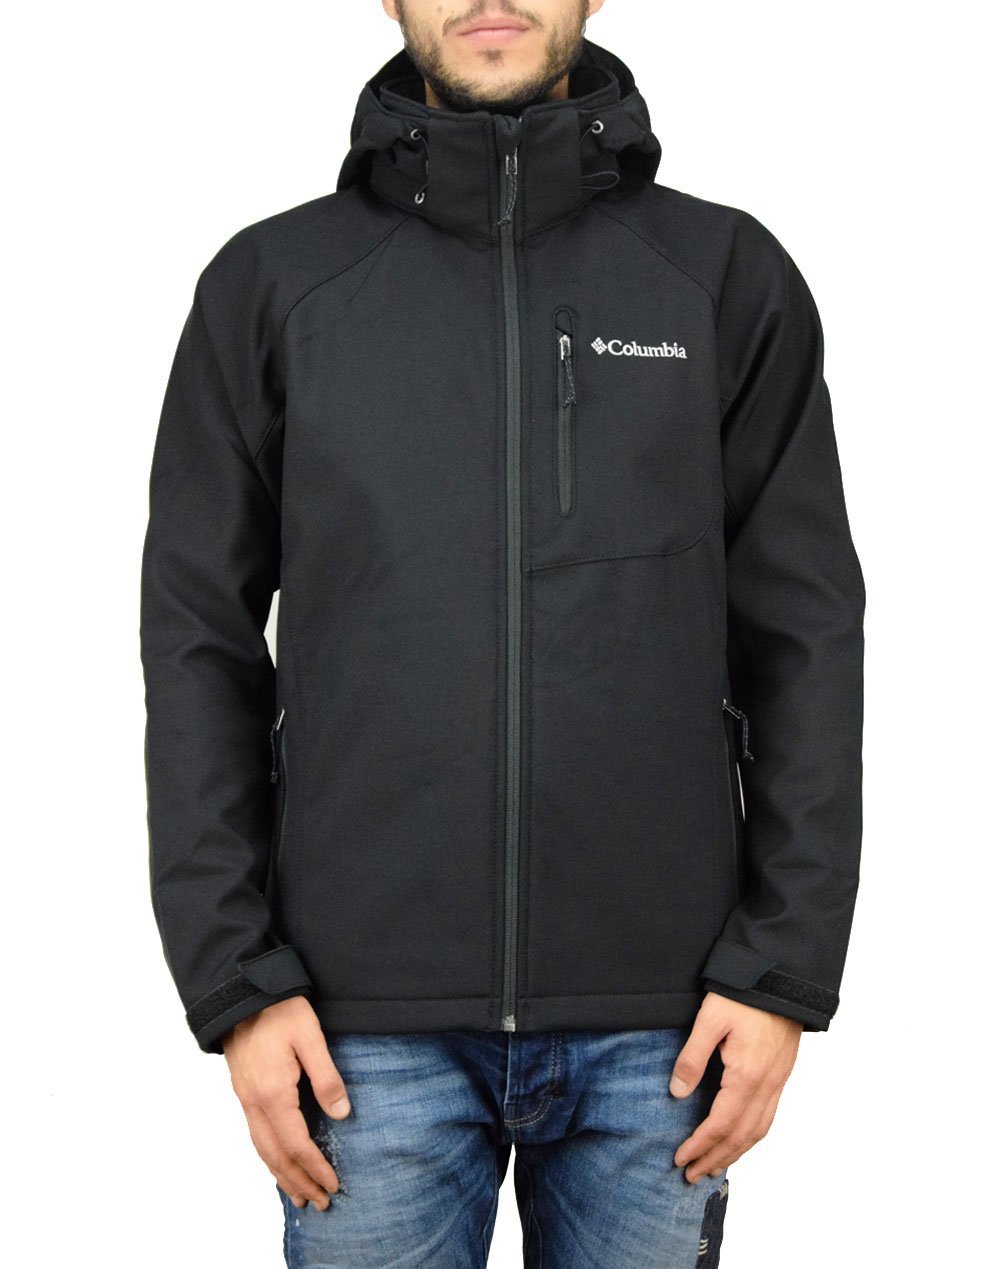 Columbia Cascade Ridge II Softshell (WM3241-011) Black